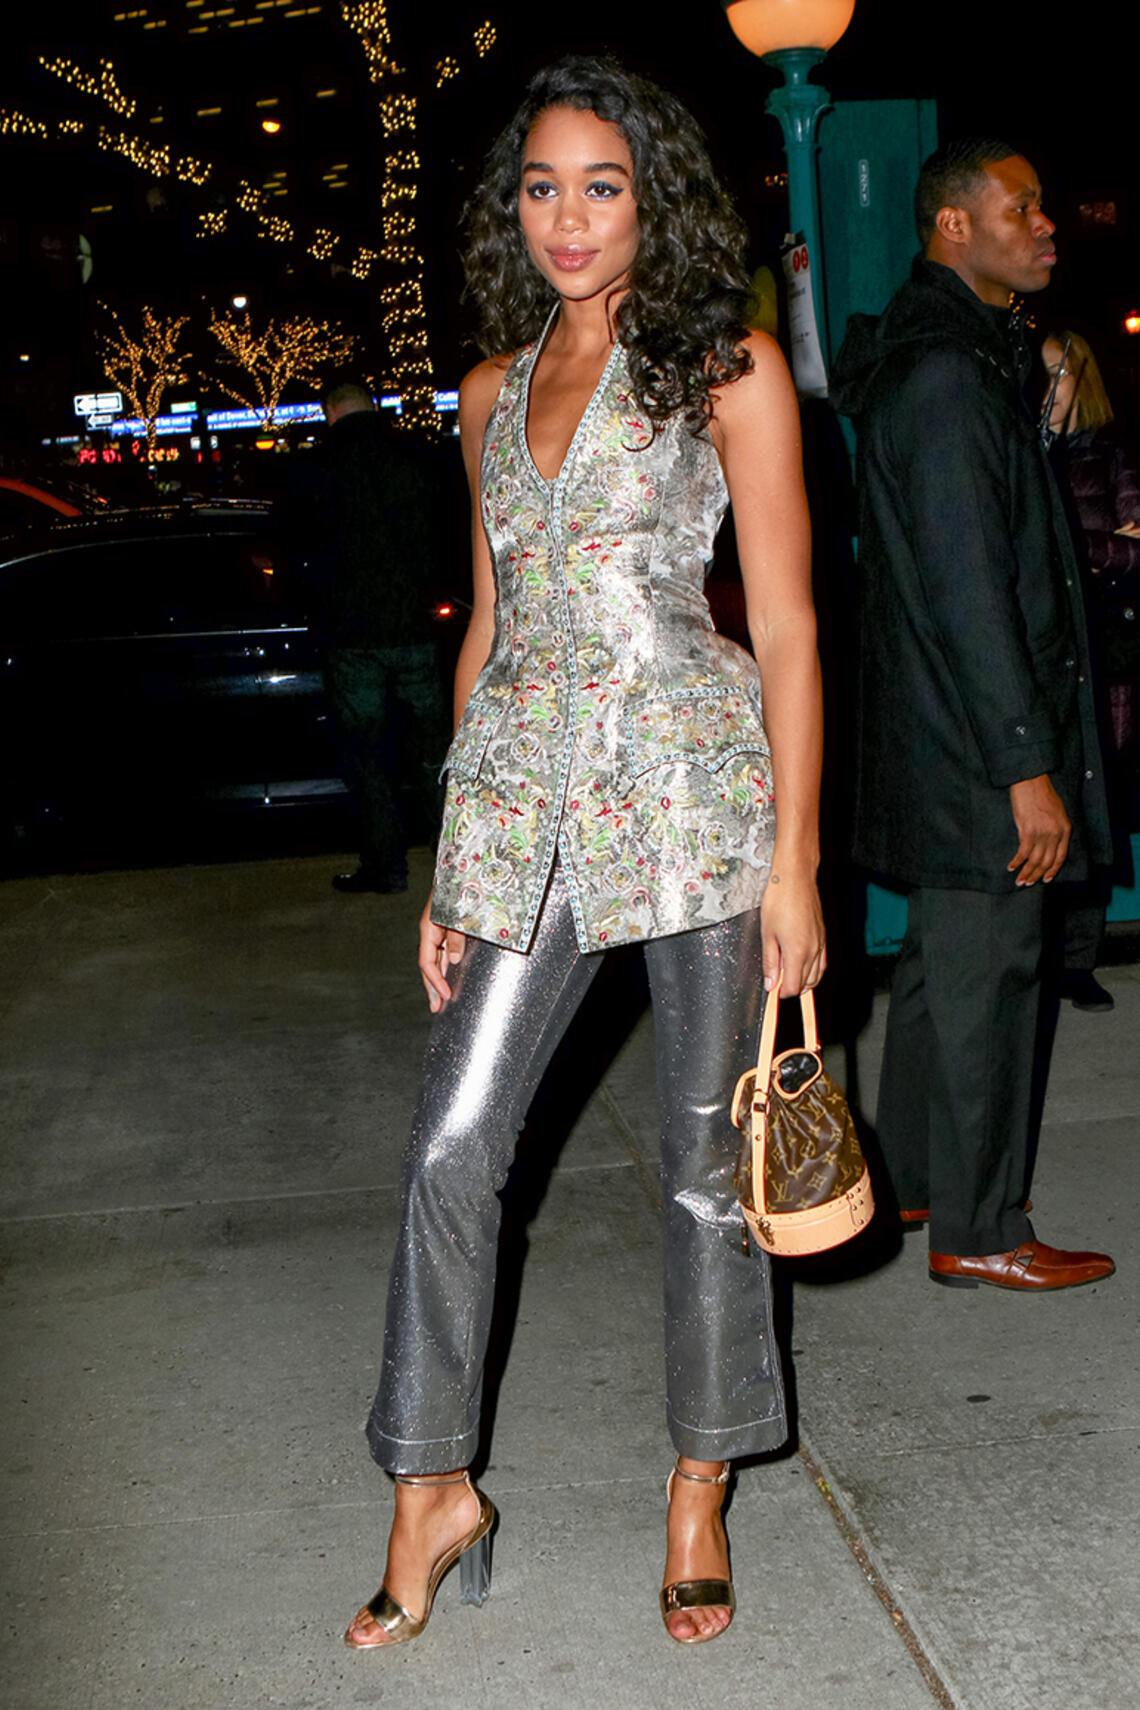 Laura Harrier, Schauspielerin - Style of the Day | Style